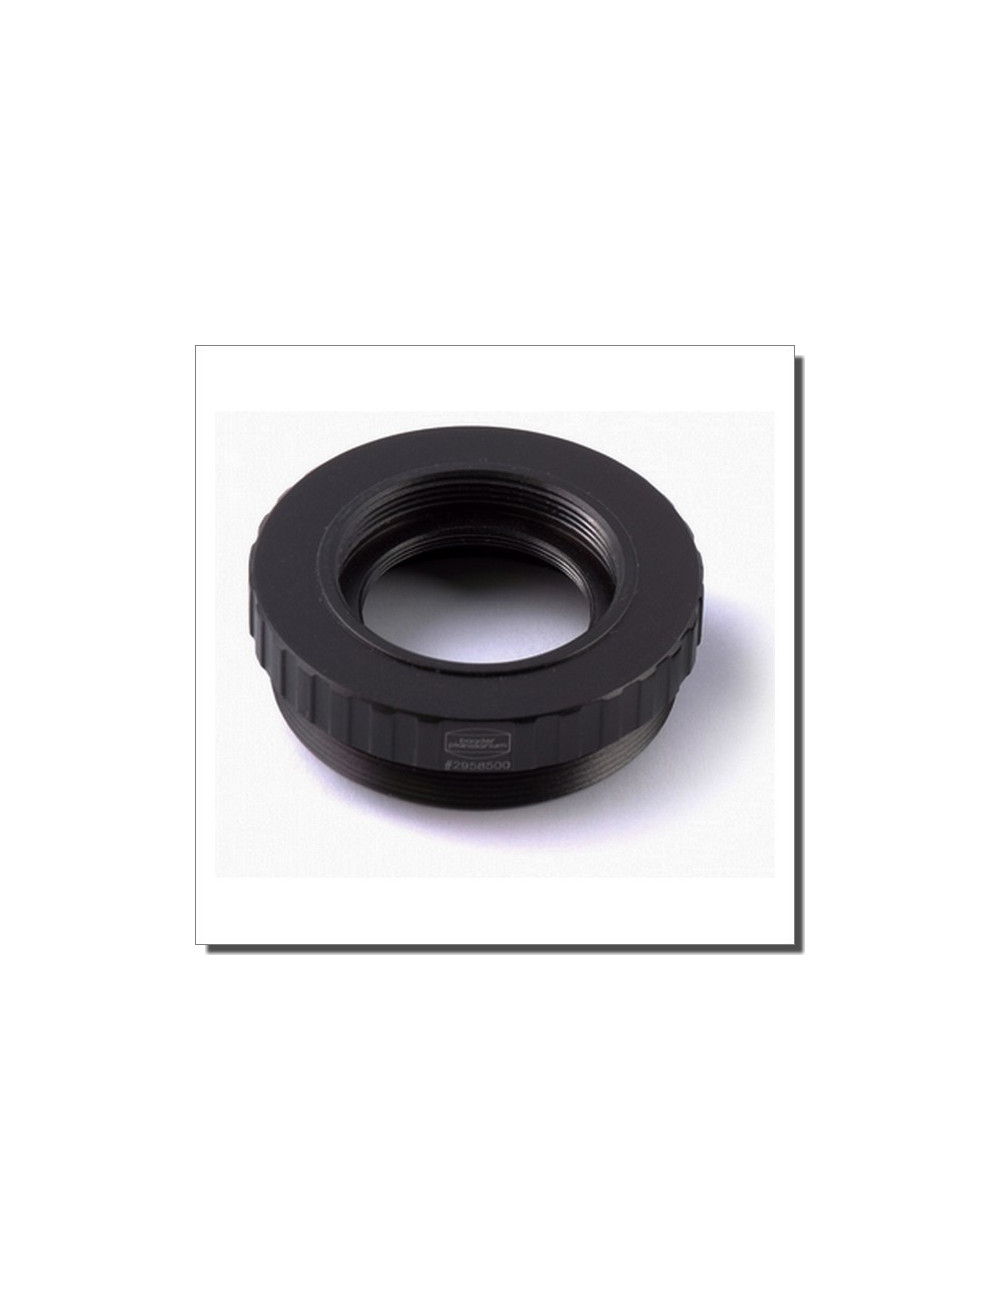 Bague de conversion NX4/C90 - 50 mm